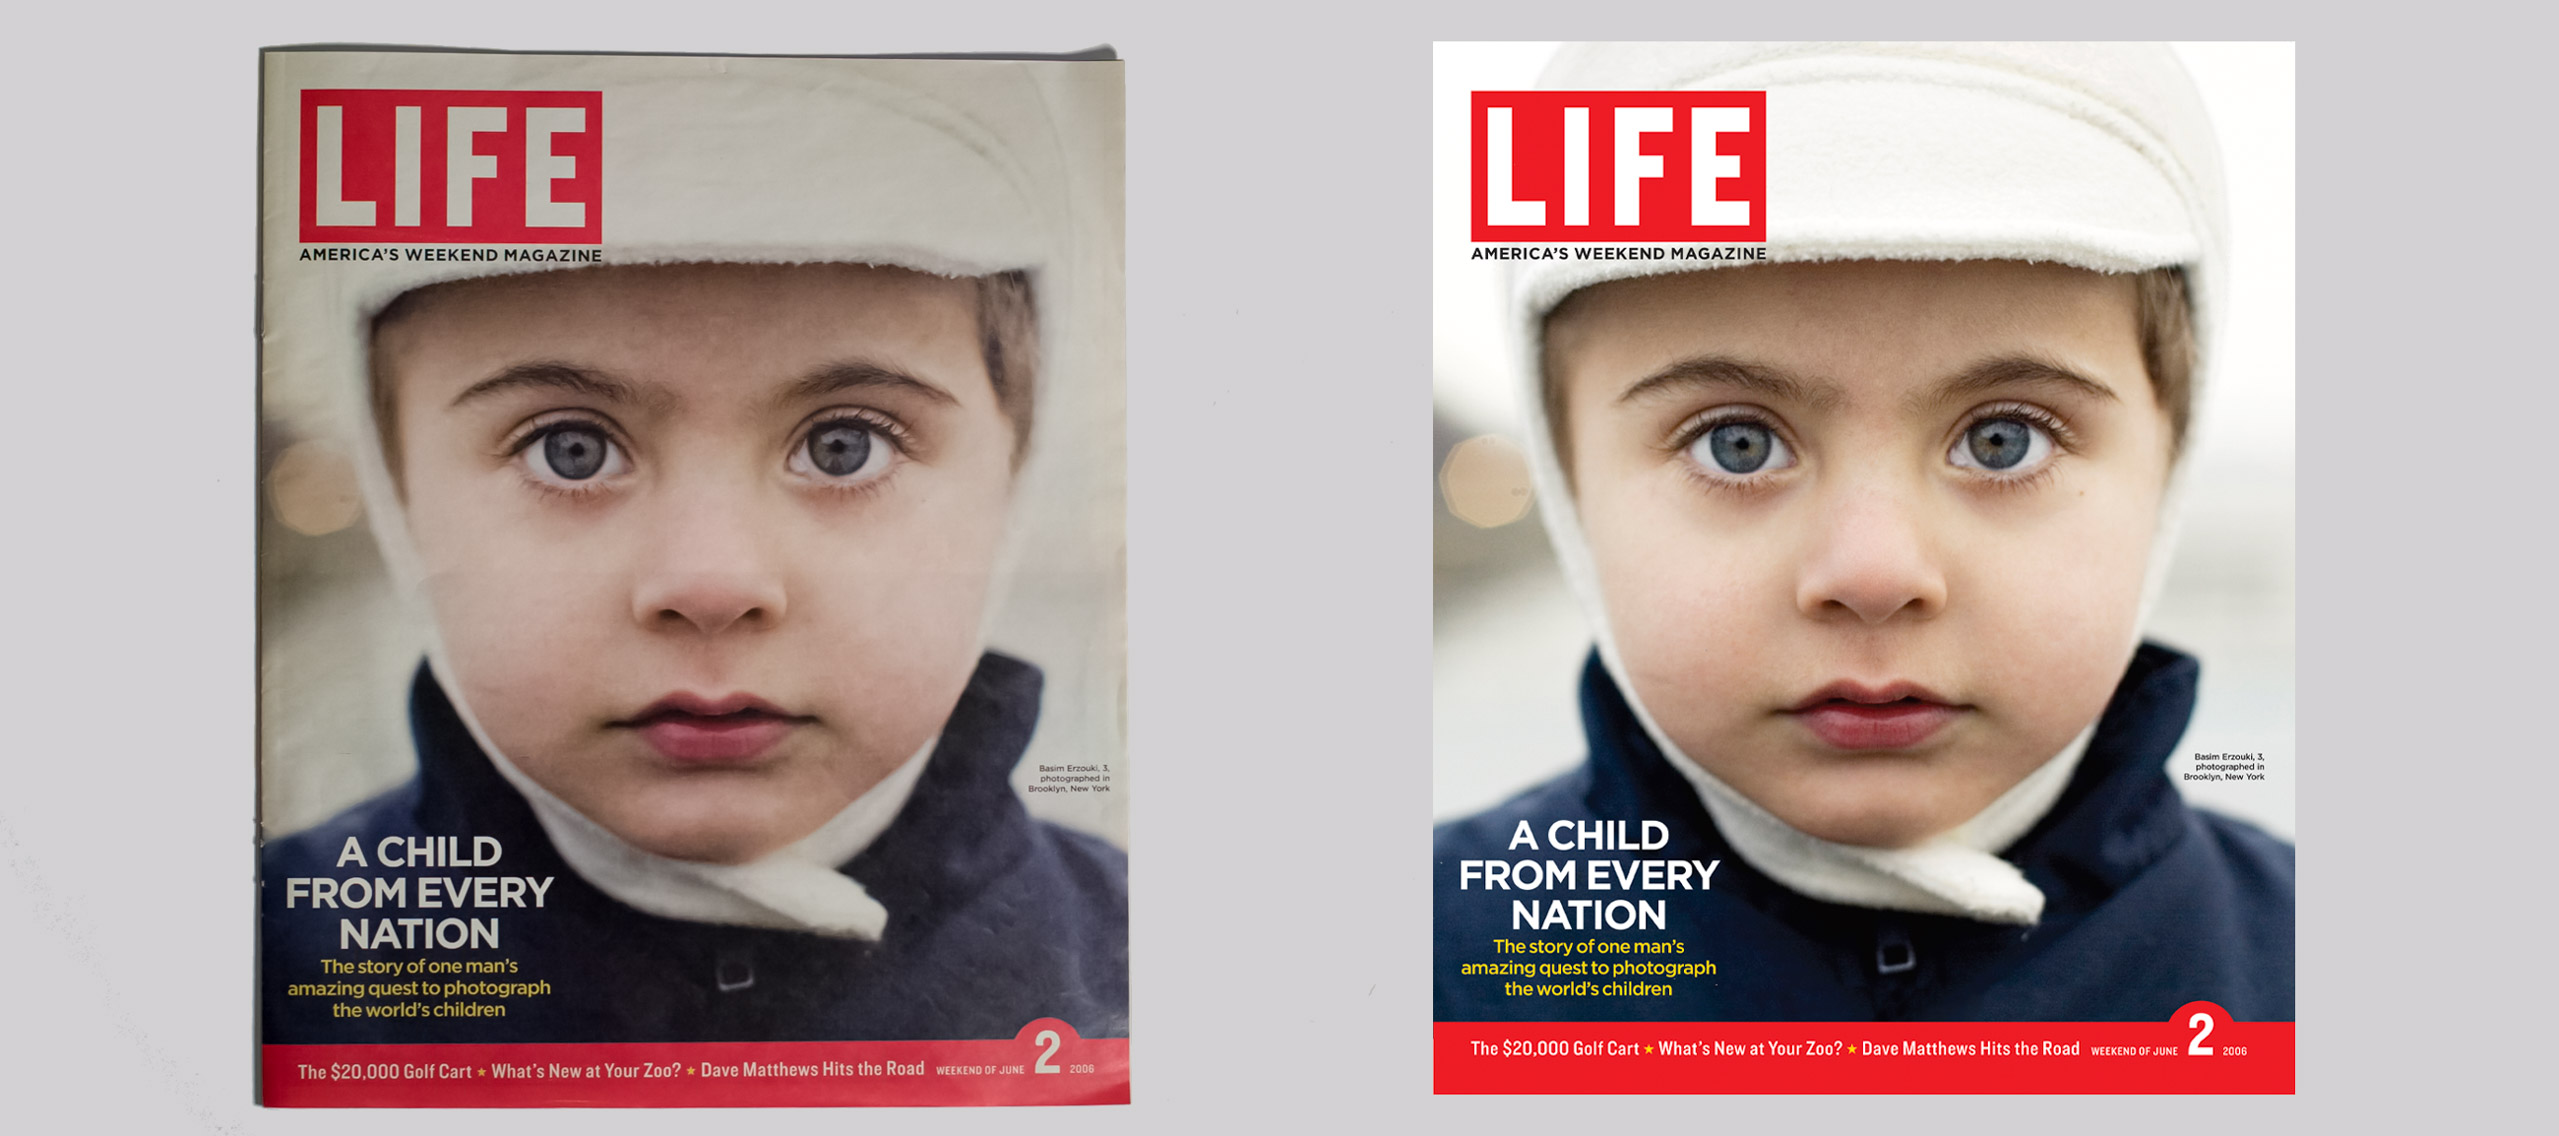 "Three copies of LIFE magazine cover by Danny Goldfield that features a close up a boy with very bright blue eyes. He is wearing a white cap and navy blue jacket. The text on the covers read ""A Child from Every Nation, the story of one man's amazing quest to photogrpah the world's children. In the top left corner of all three identical magazines is the LIFE magazine logo."